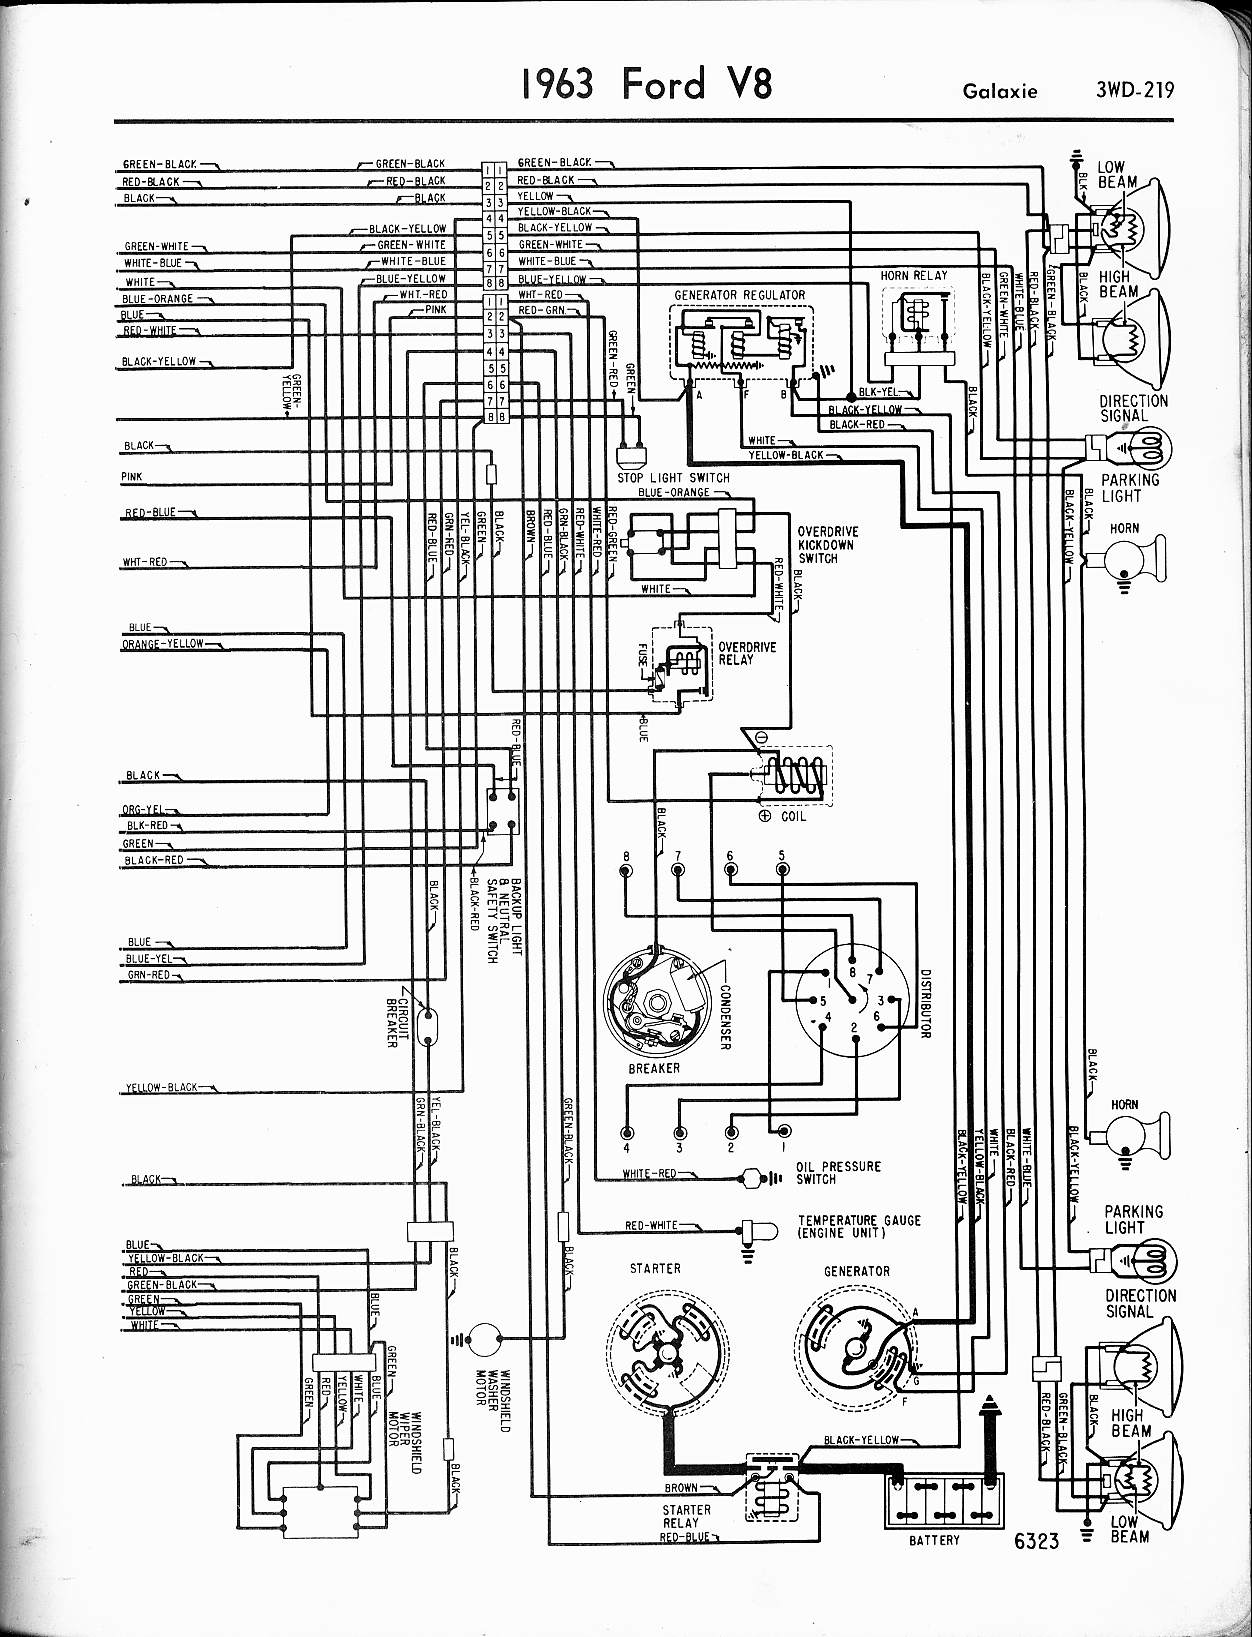 1968 Ford Galaxie 500 Fuse Box Schema Wiring Diagrams Windshield Wiper Diagram Scematic Ltd Brougham